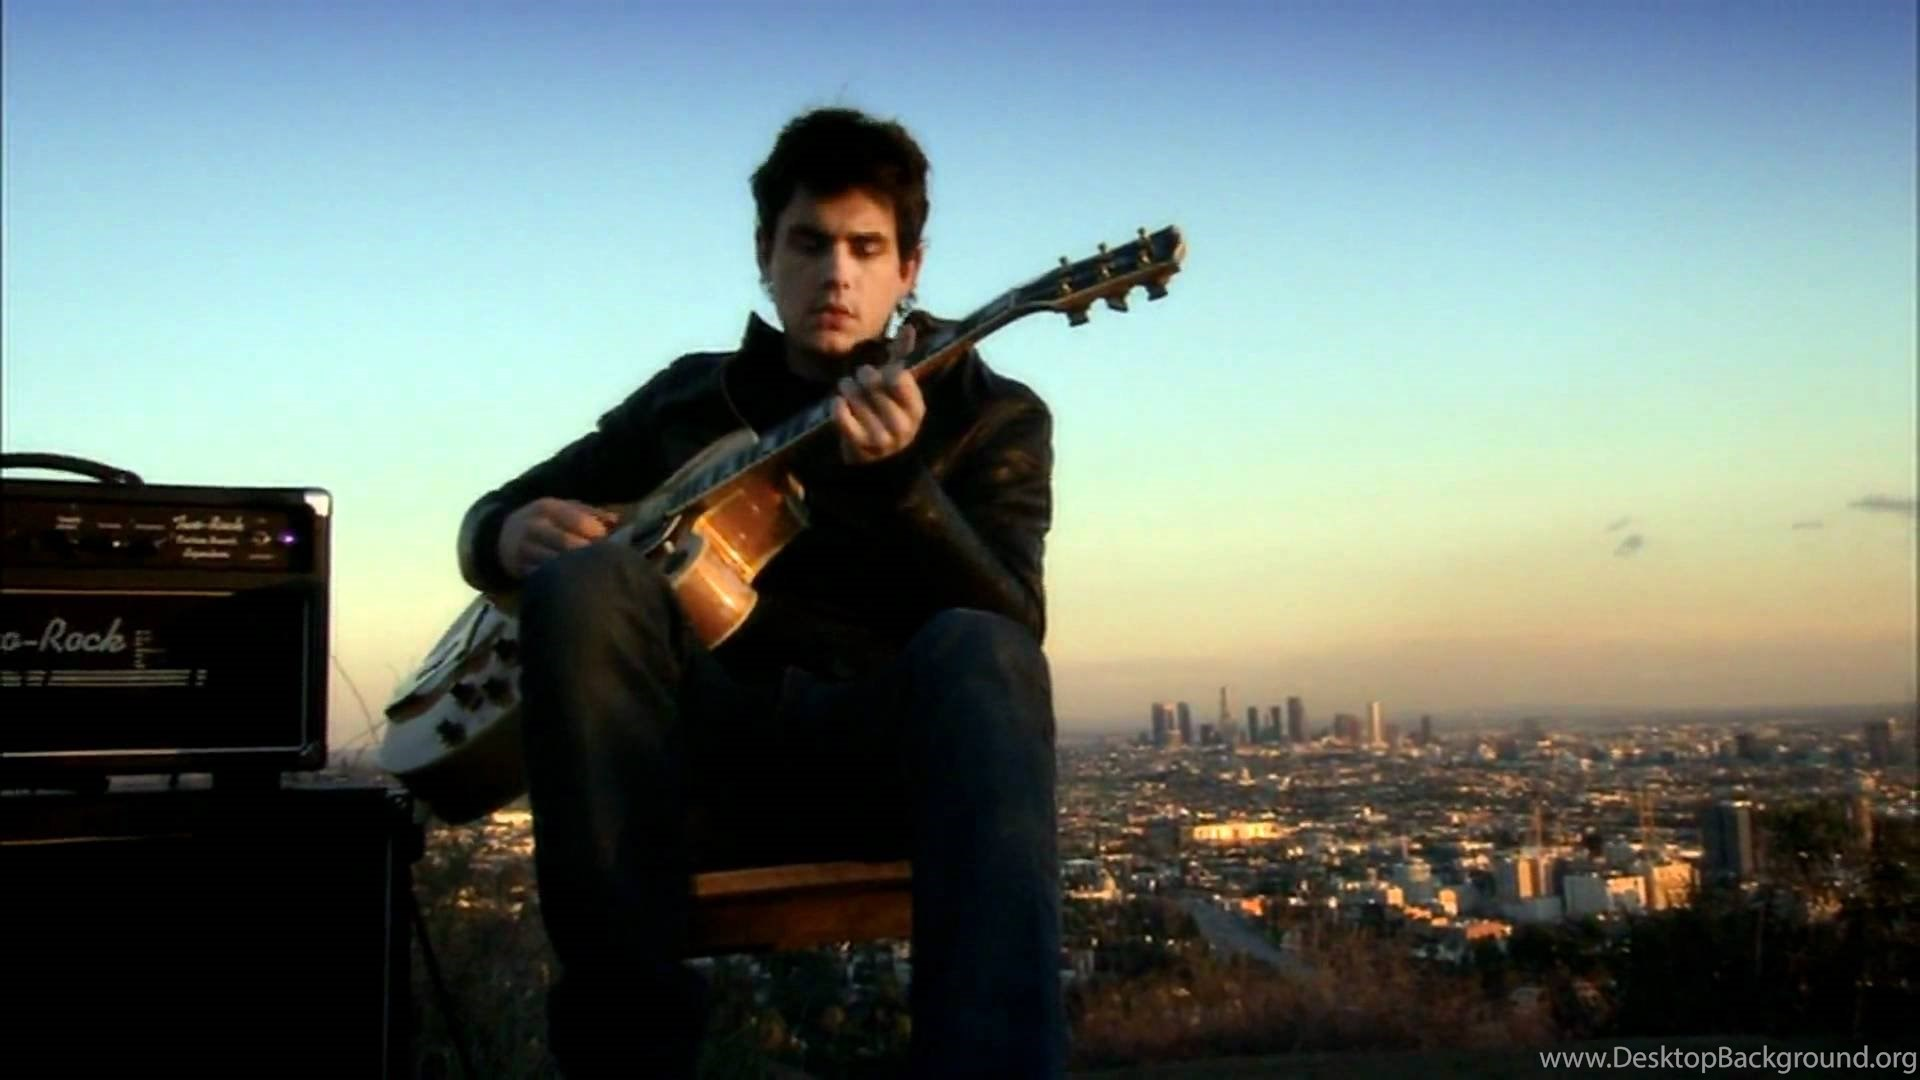 John Mayer Wallpaper: John Mayer Desktop Wallpapers HD Wallpaper Backgrounds Of